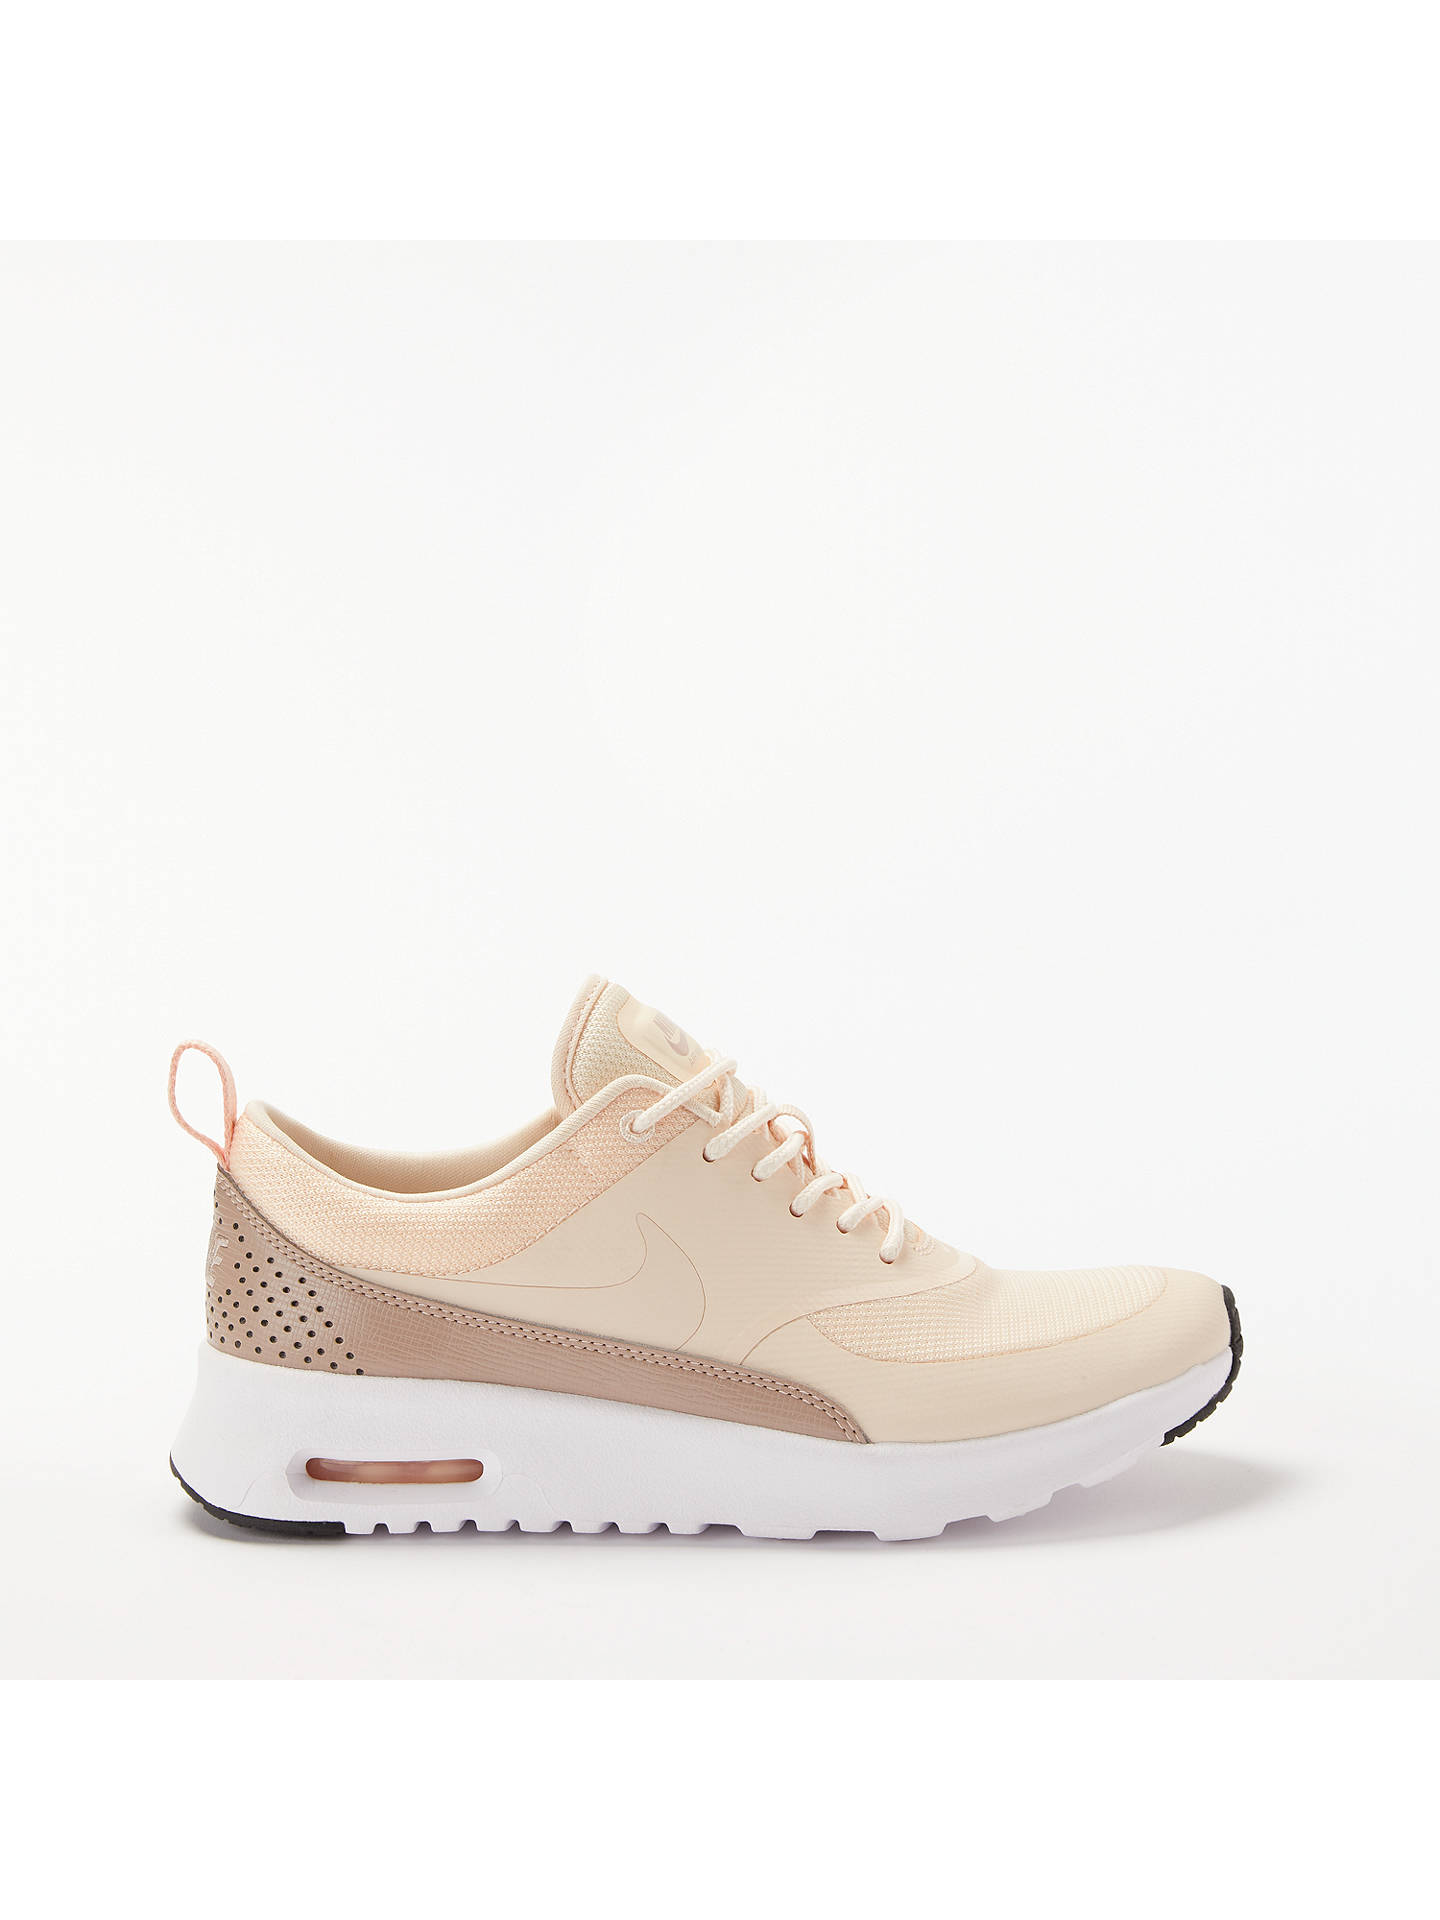 BuyNike Air Max Thea Women s Trainers 98eb977c3